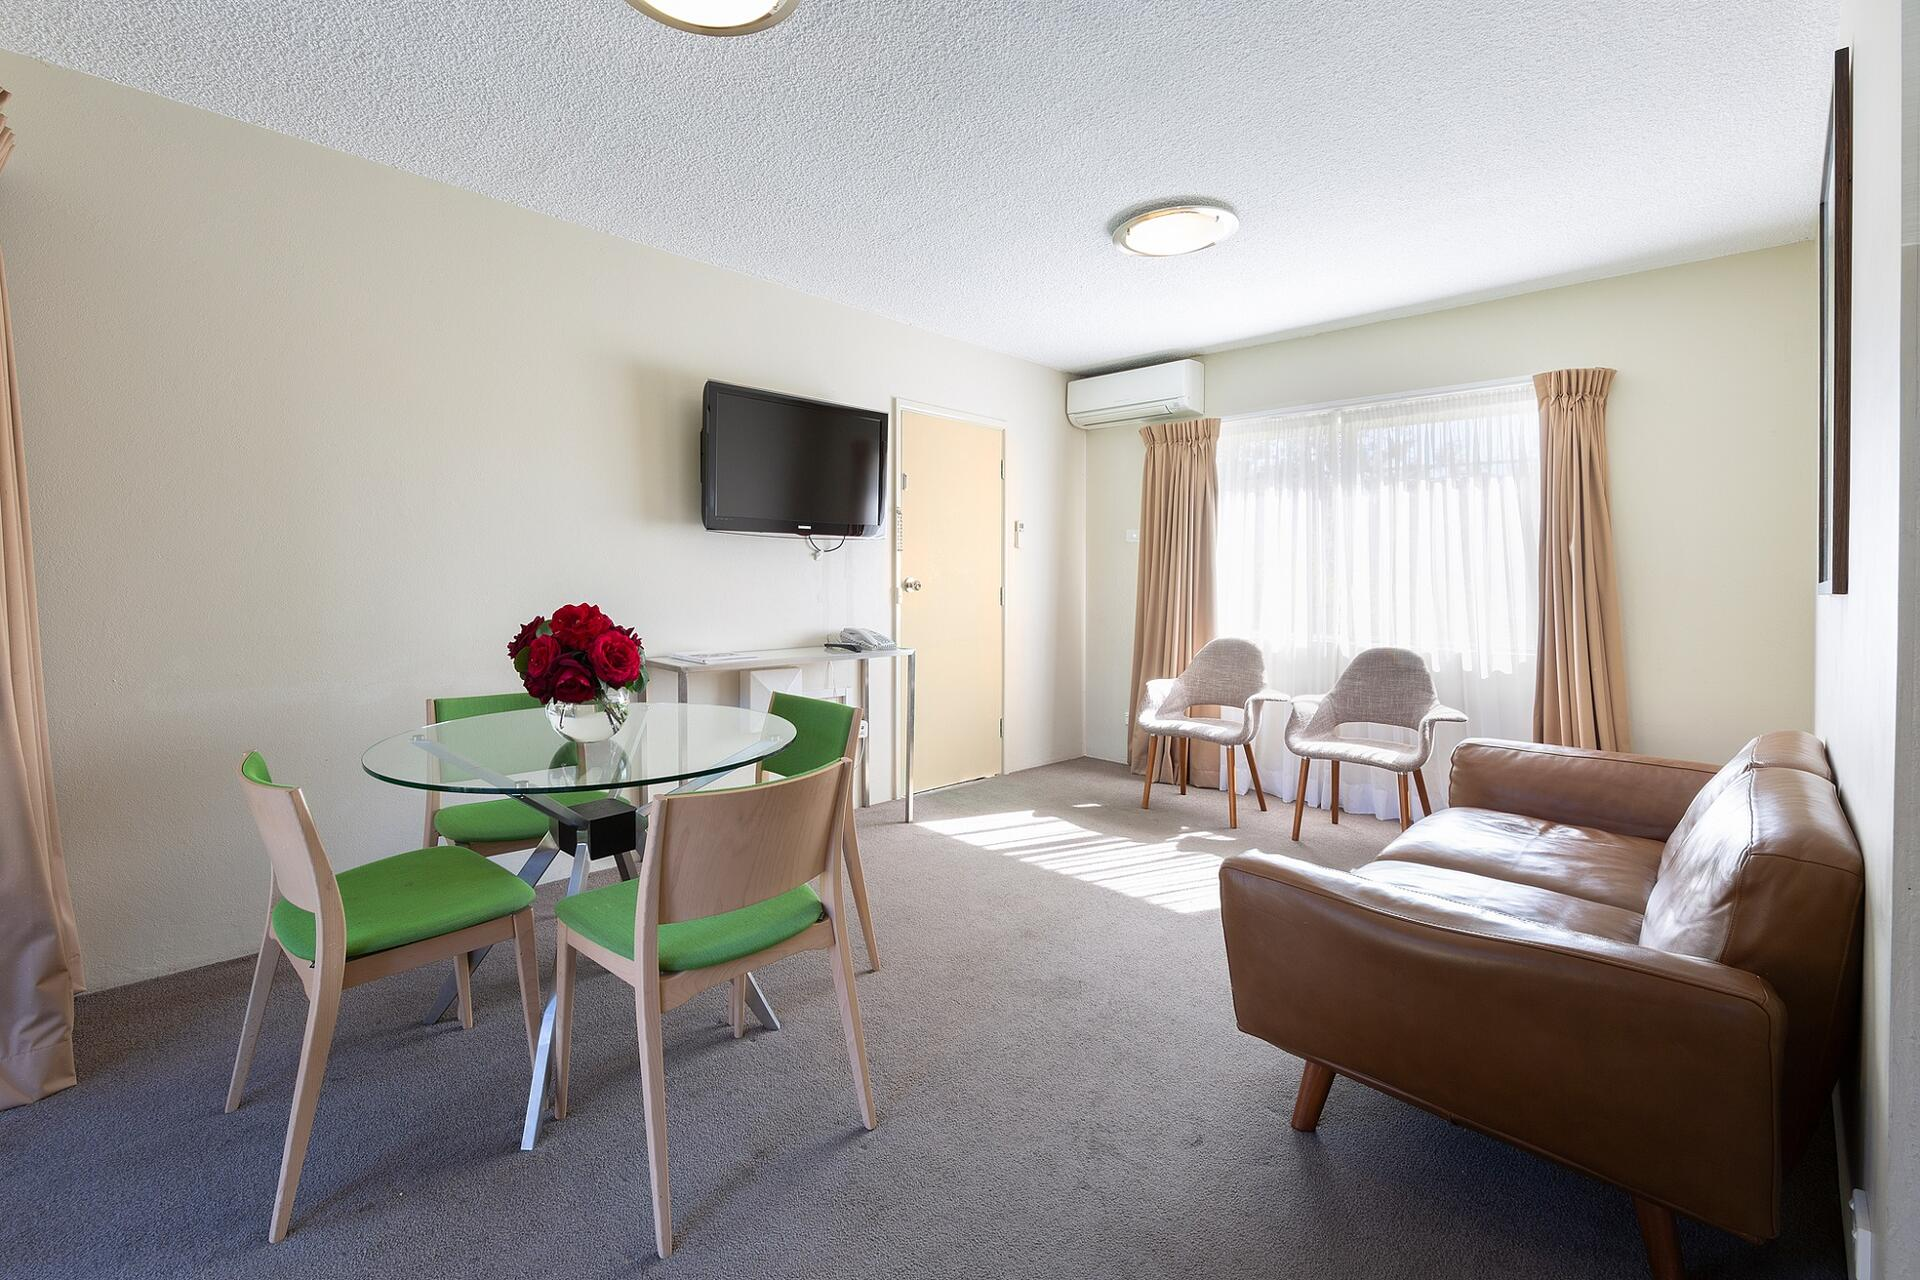 2 Bedroom Accommodation Canberra Hotel Accommodation Canberra Place To Stay Canberra Forrest Hotel